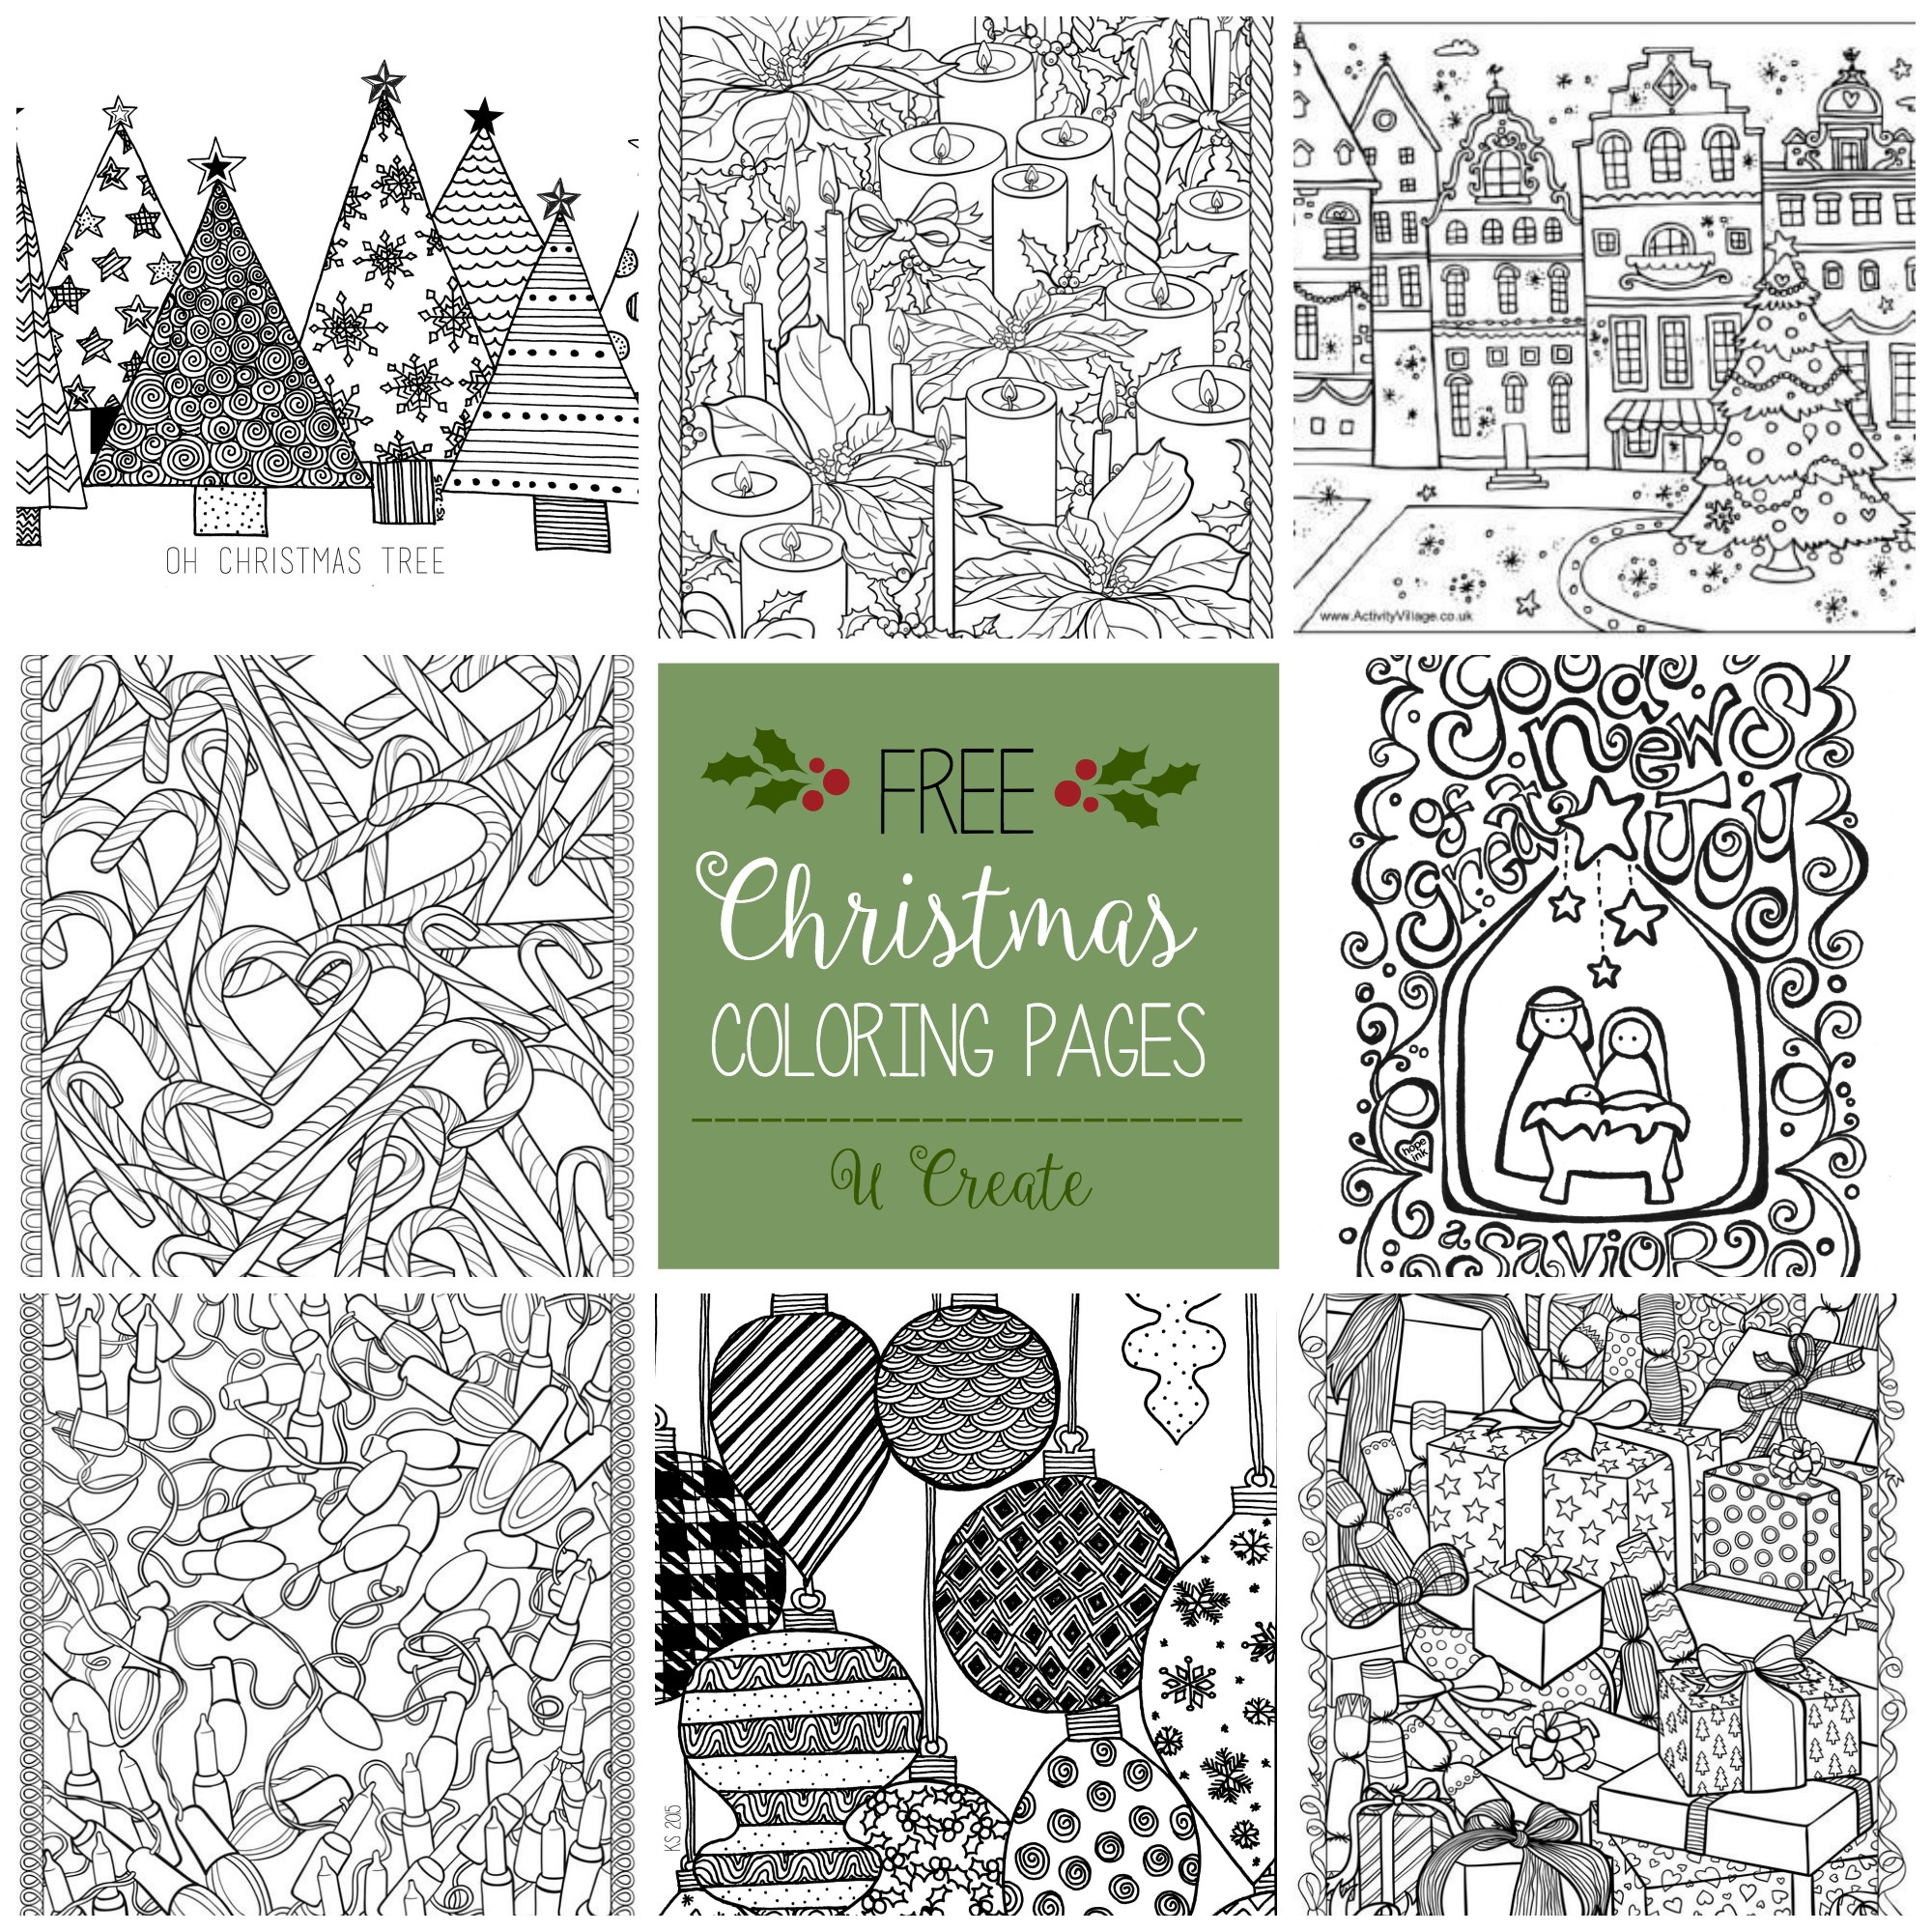 free christmas adult coloring pages u create - Printable Coloring Christmas Pictures